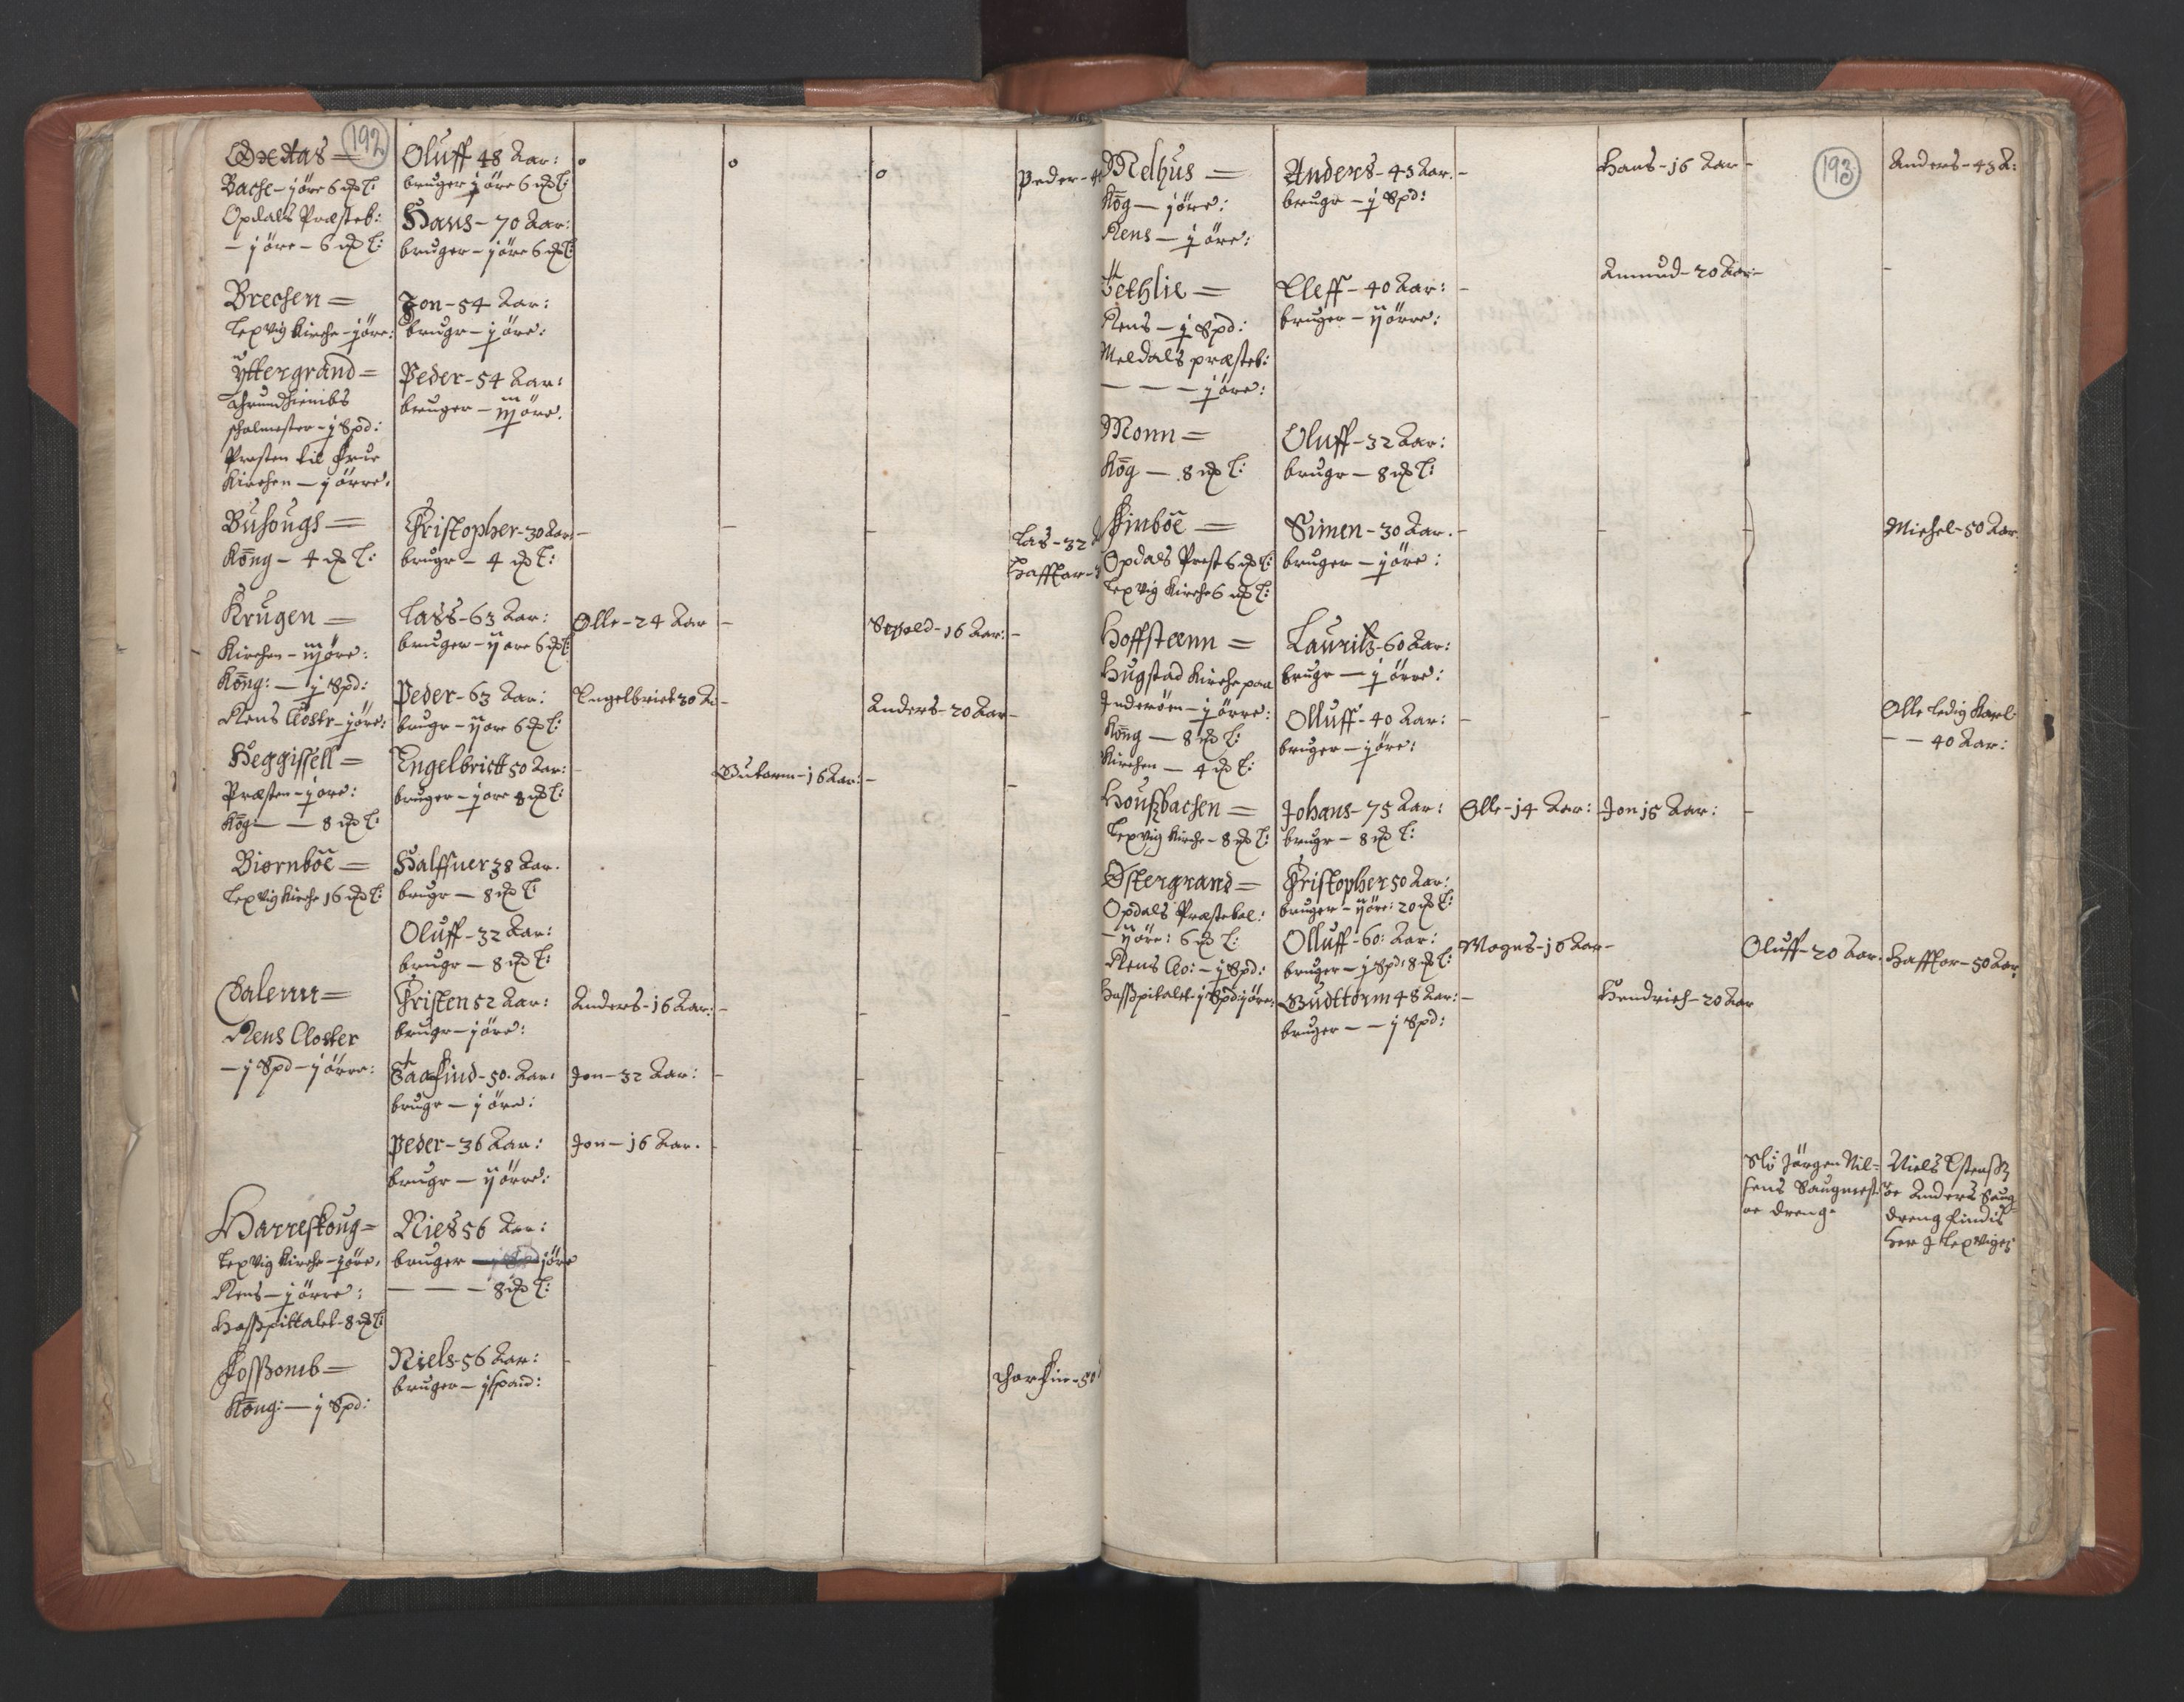 RA, Vicar's Census 1664-1666, no. 32: Innherad deanery, 1664-1666, p. 192-193